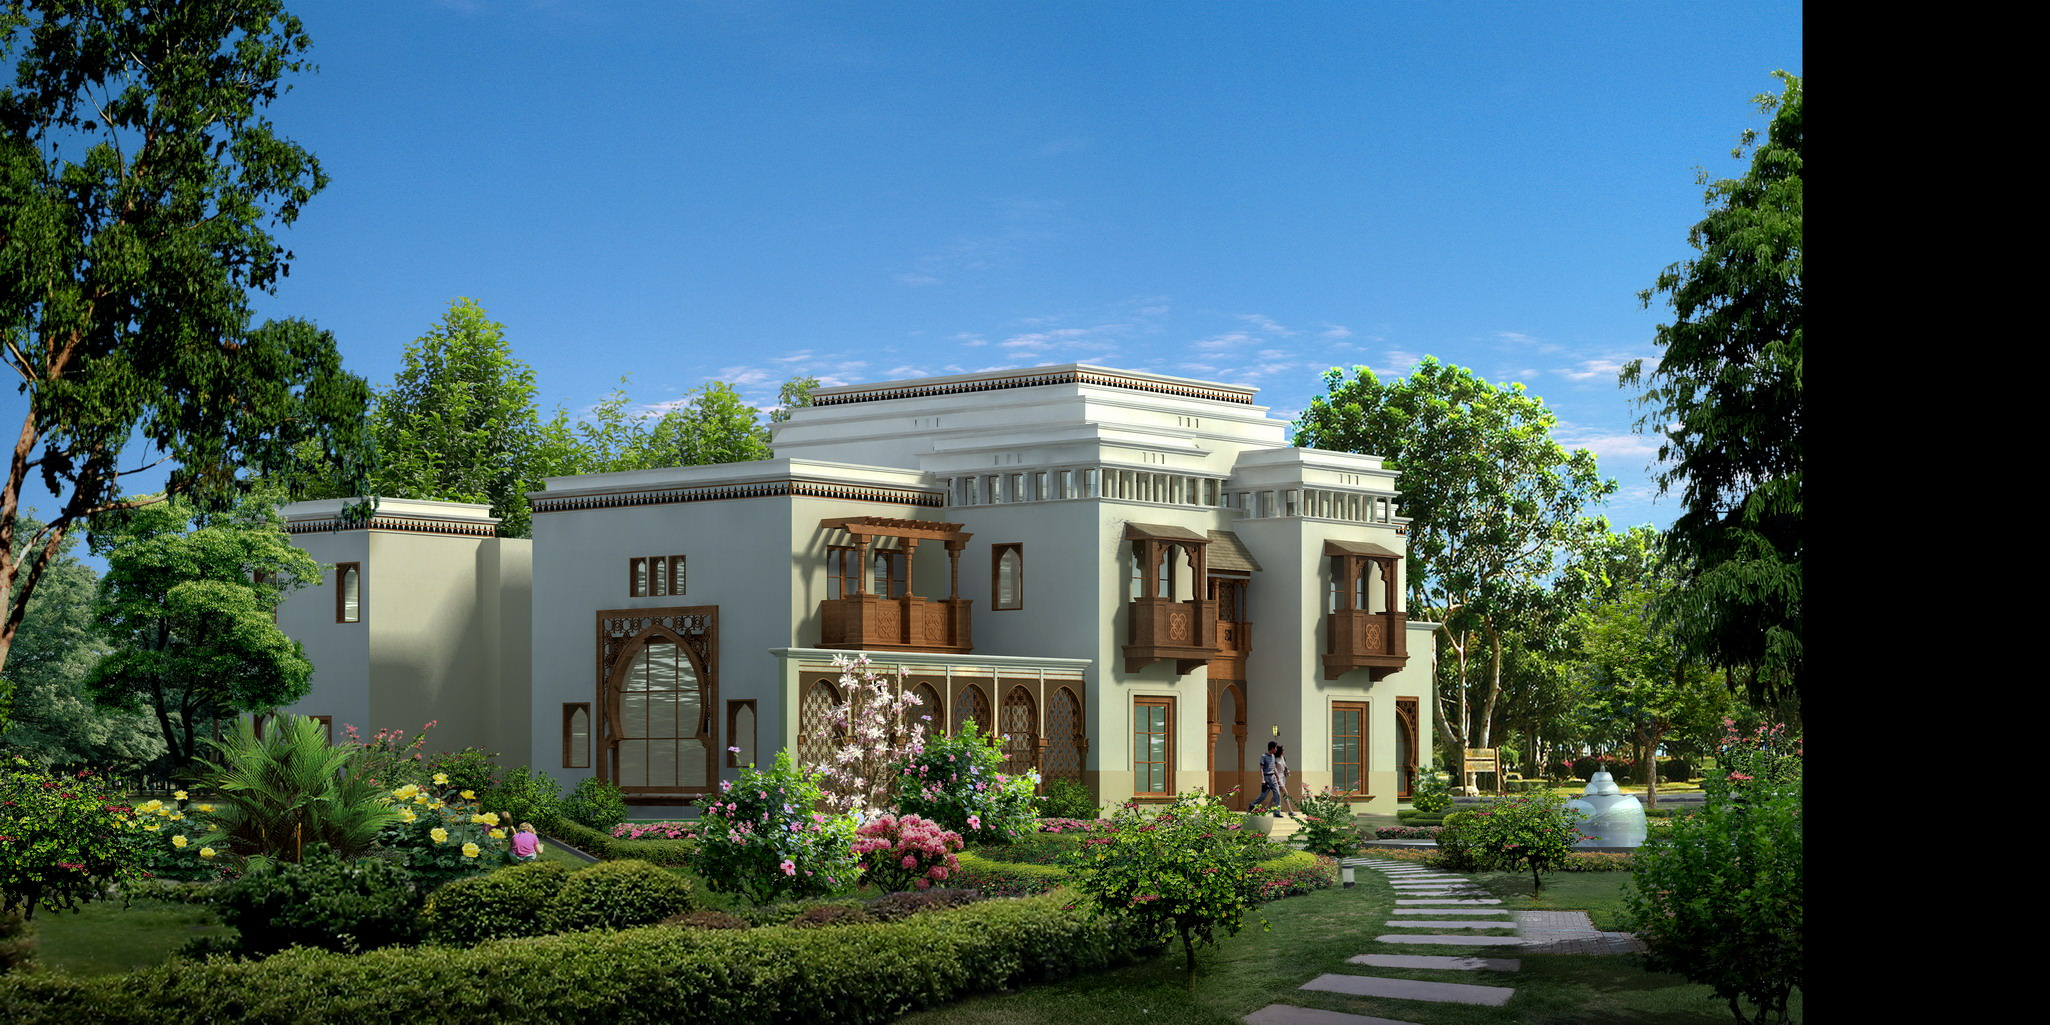 House 034 luxury countryside villa 3d model max for Luxury home models